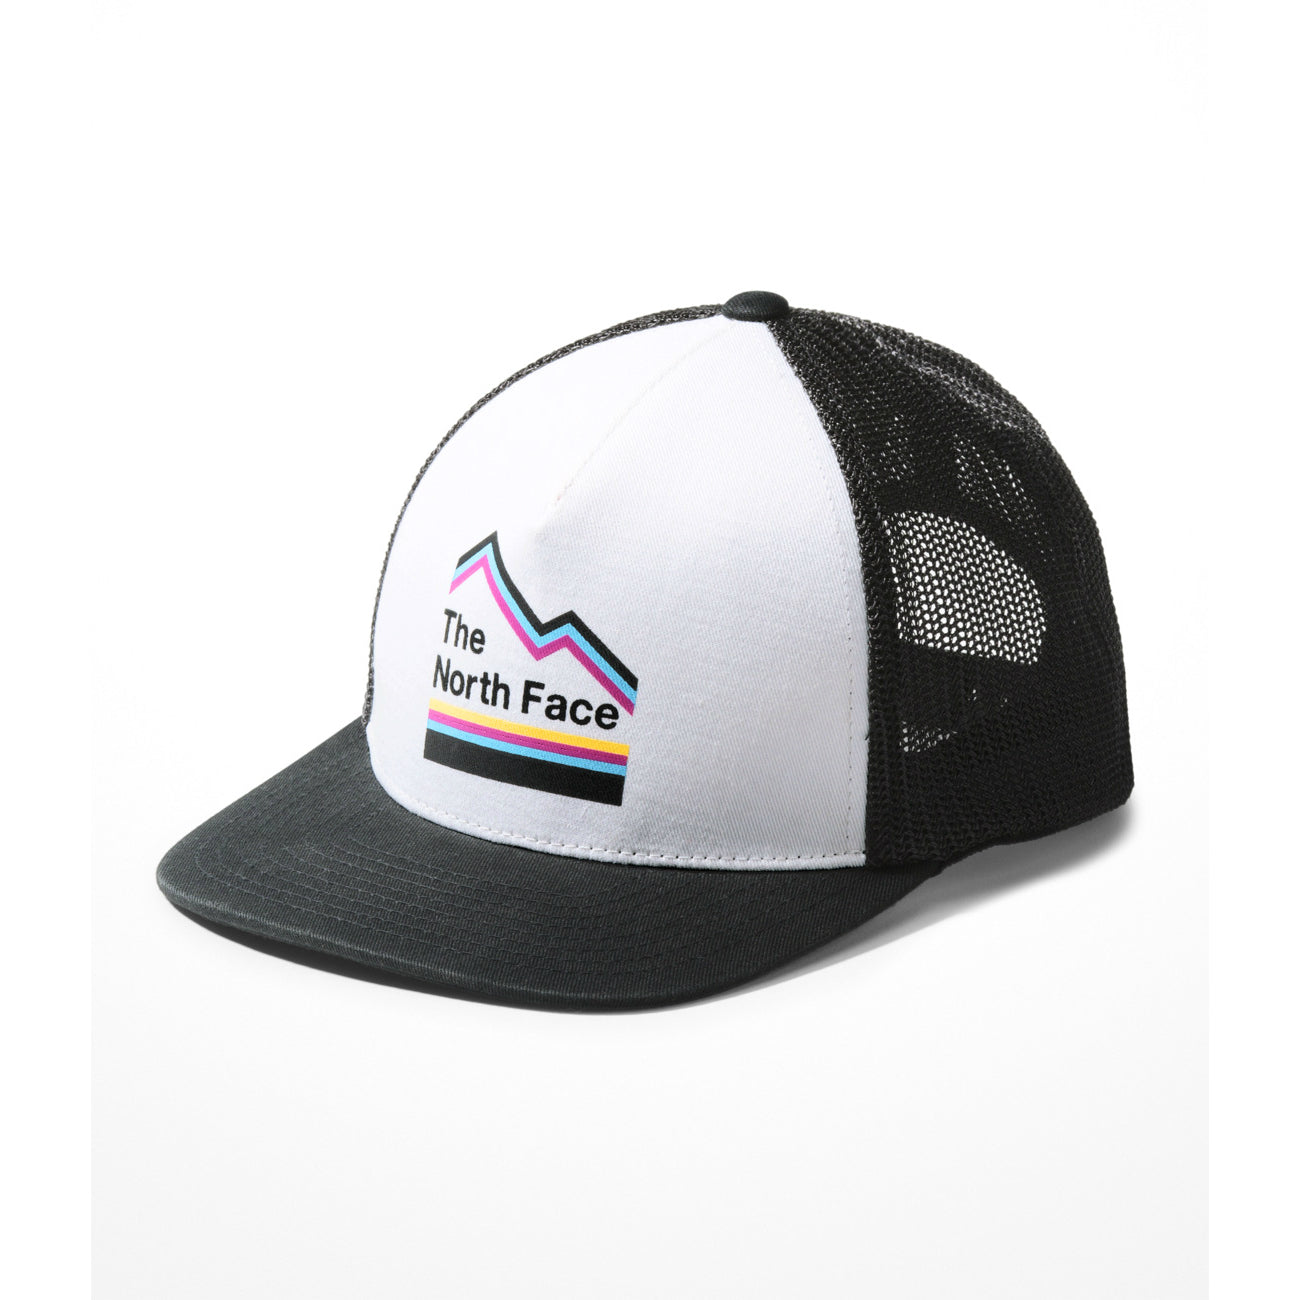 The North Face TNF White Multi Keep It Structured Trucker Hat